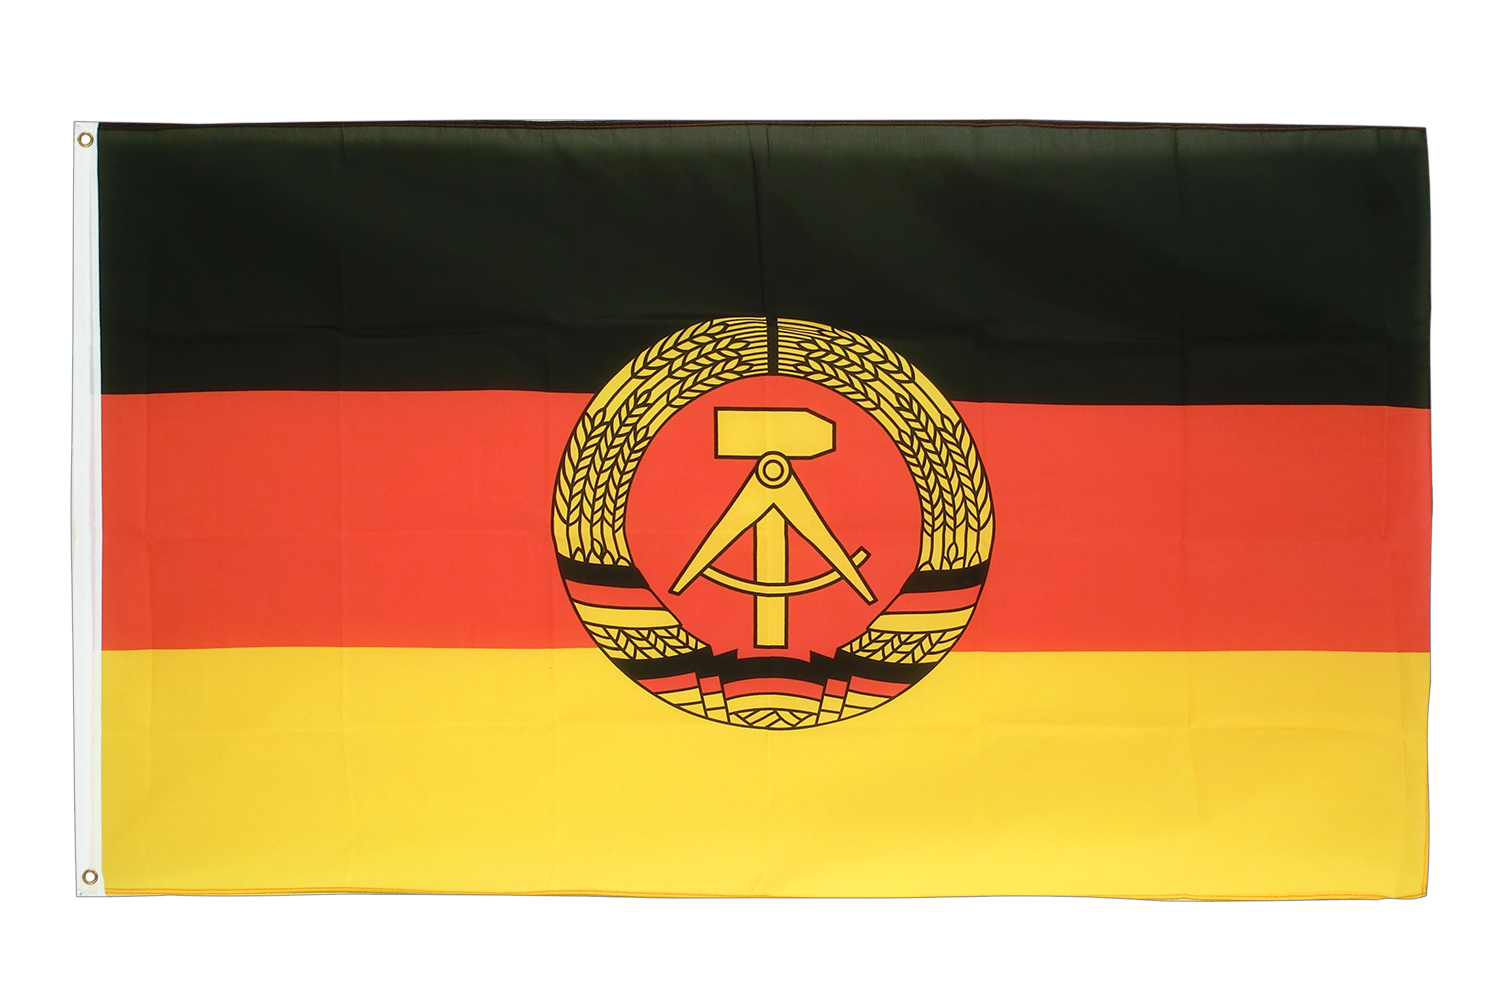 ddr flagge kaufen 90 x 150 cm flaggenplatz online shop. Black Bedroom Furniture Sets. Home Design Ideas